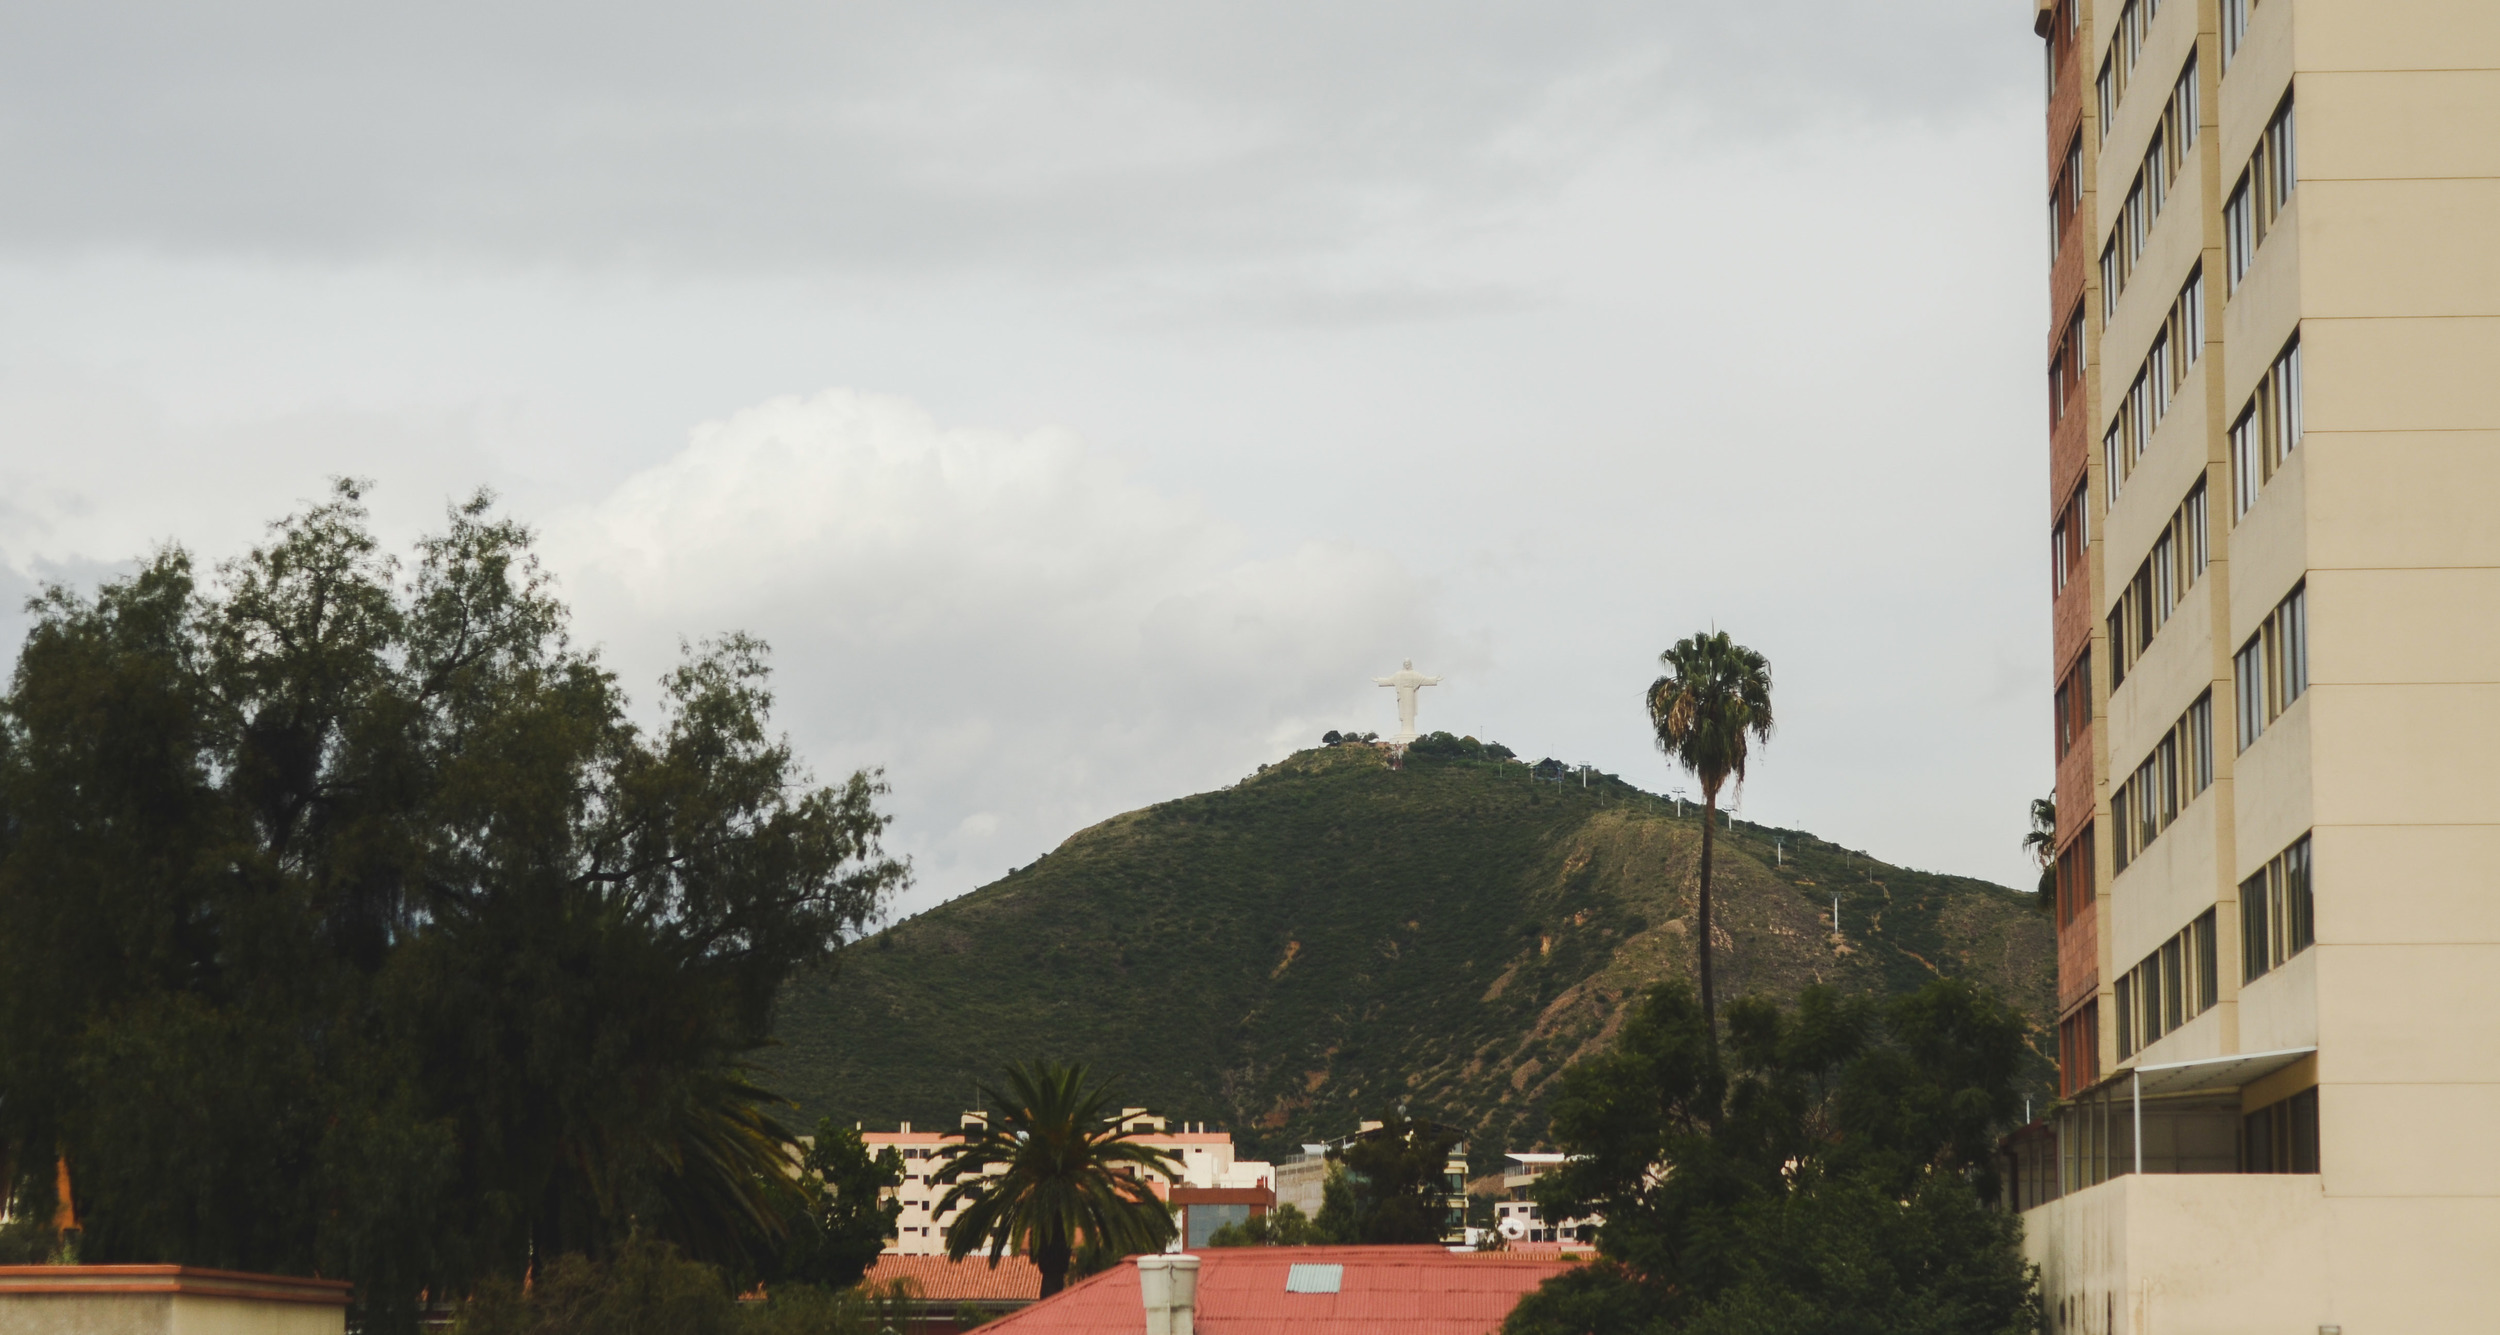 Cristo de la Concordia in the distance, a statue of Christ 40m tall on el  cerro de San Pedro